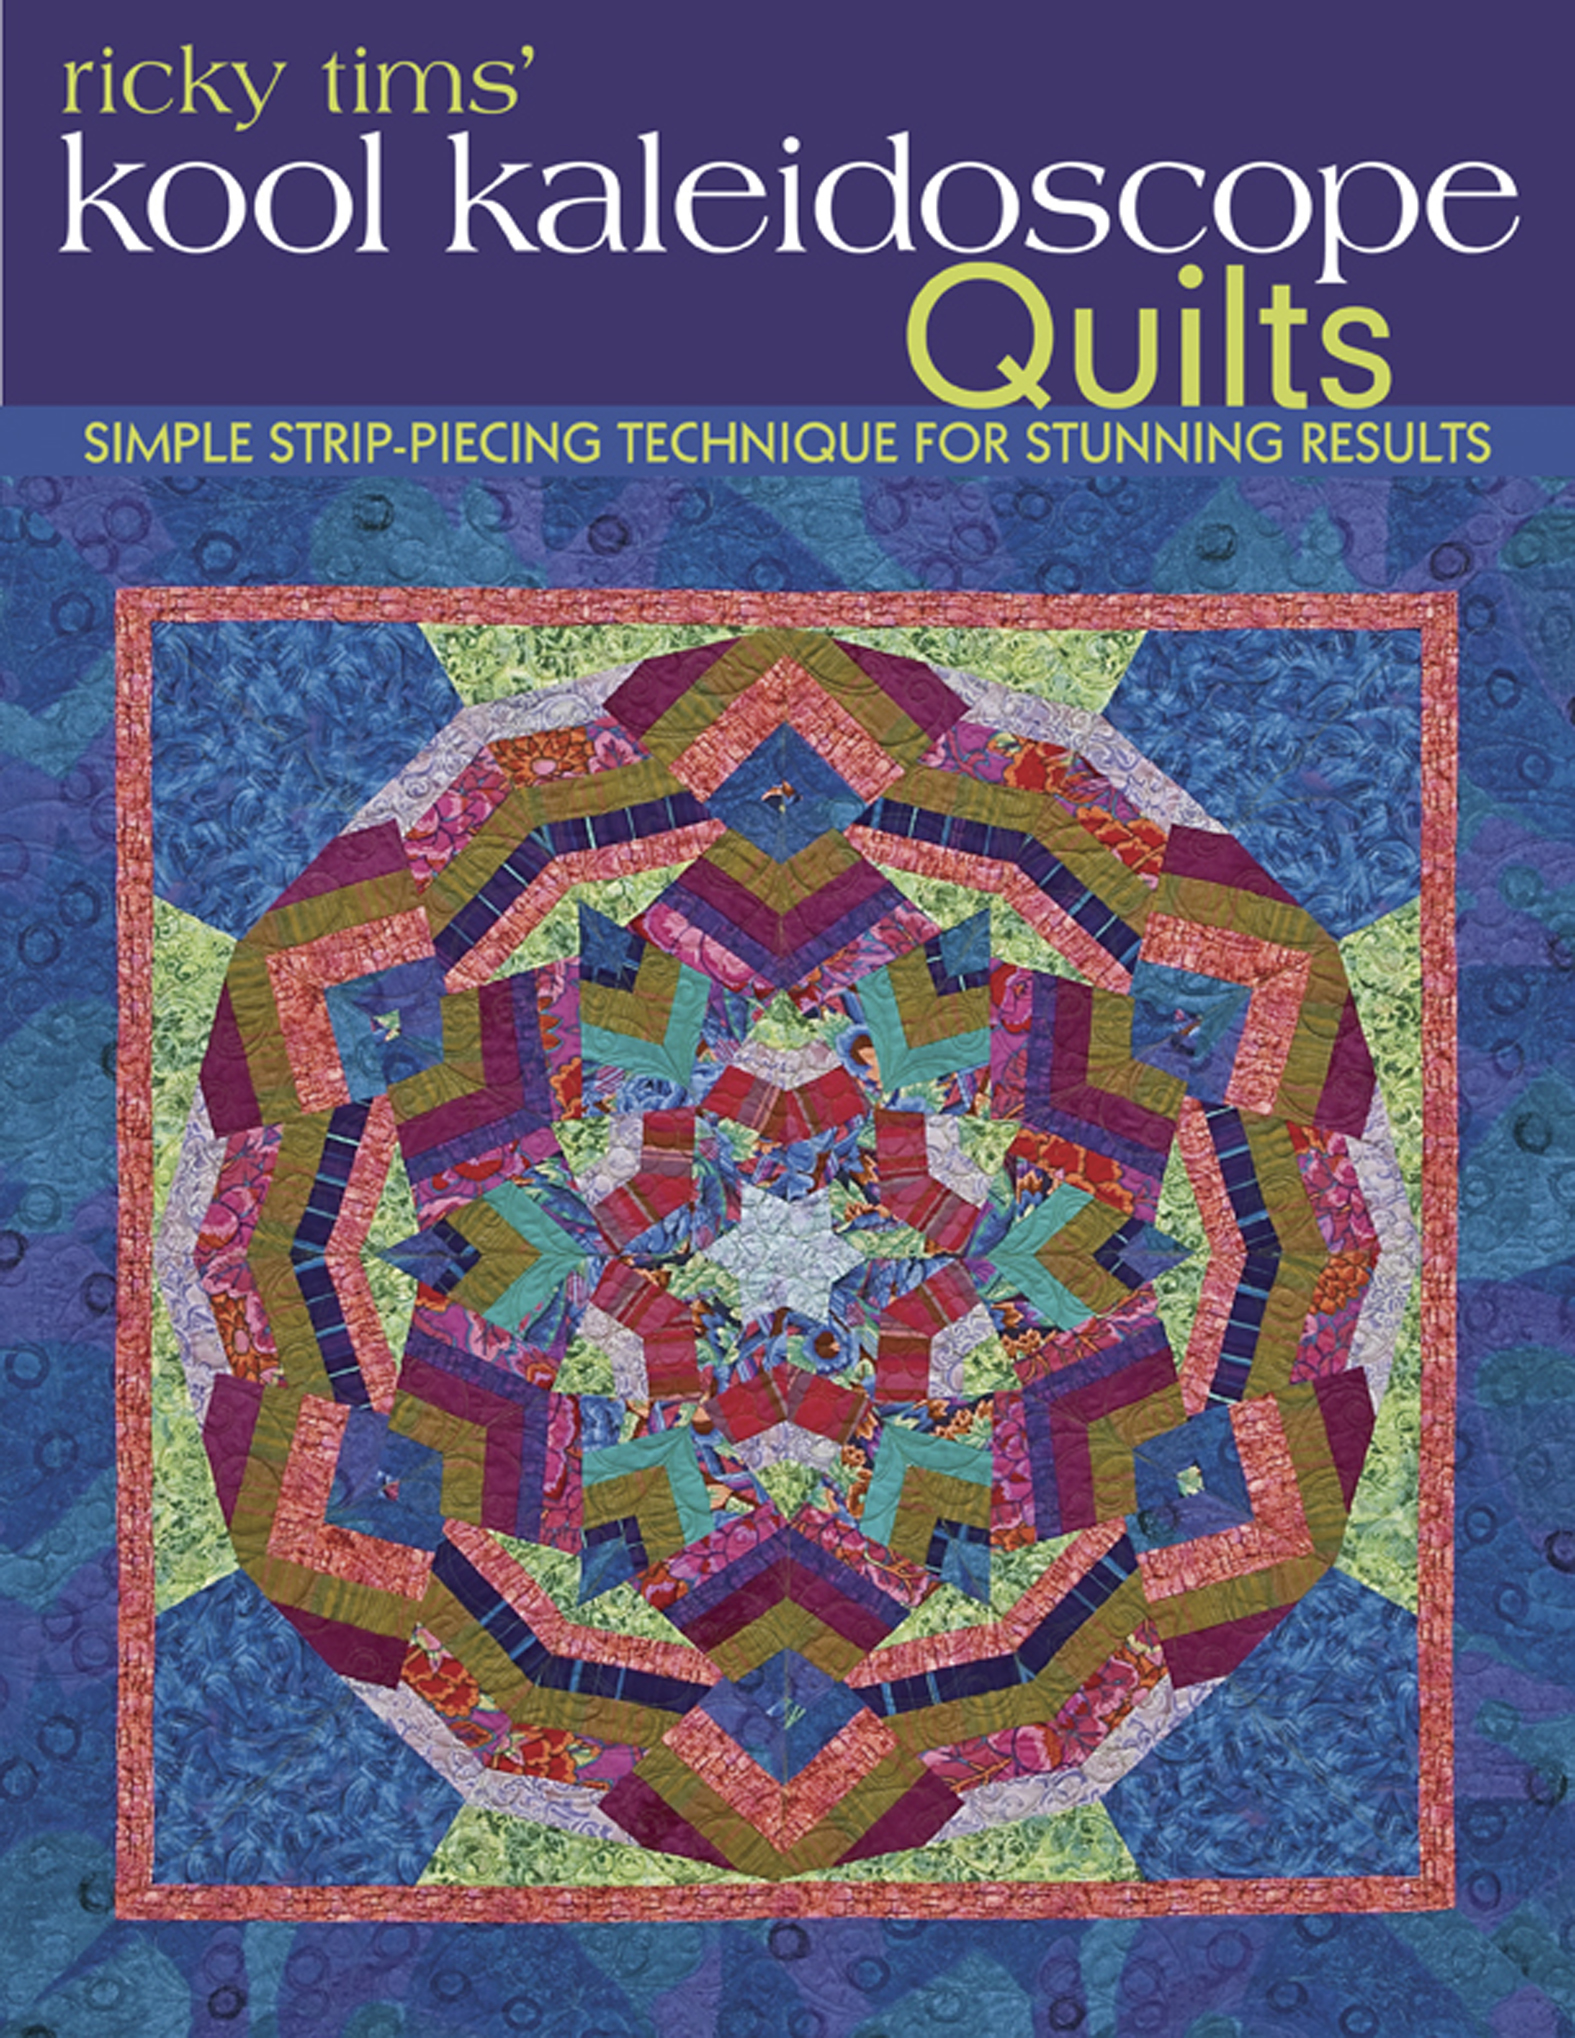 Ricky Tims' Kool Kaleidoscope Quilts Simple Strip-Piecing Technique for Stunning Results